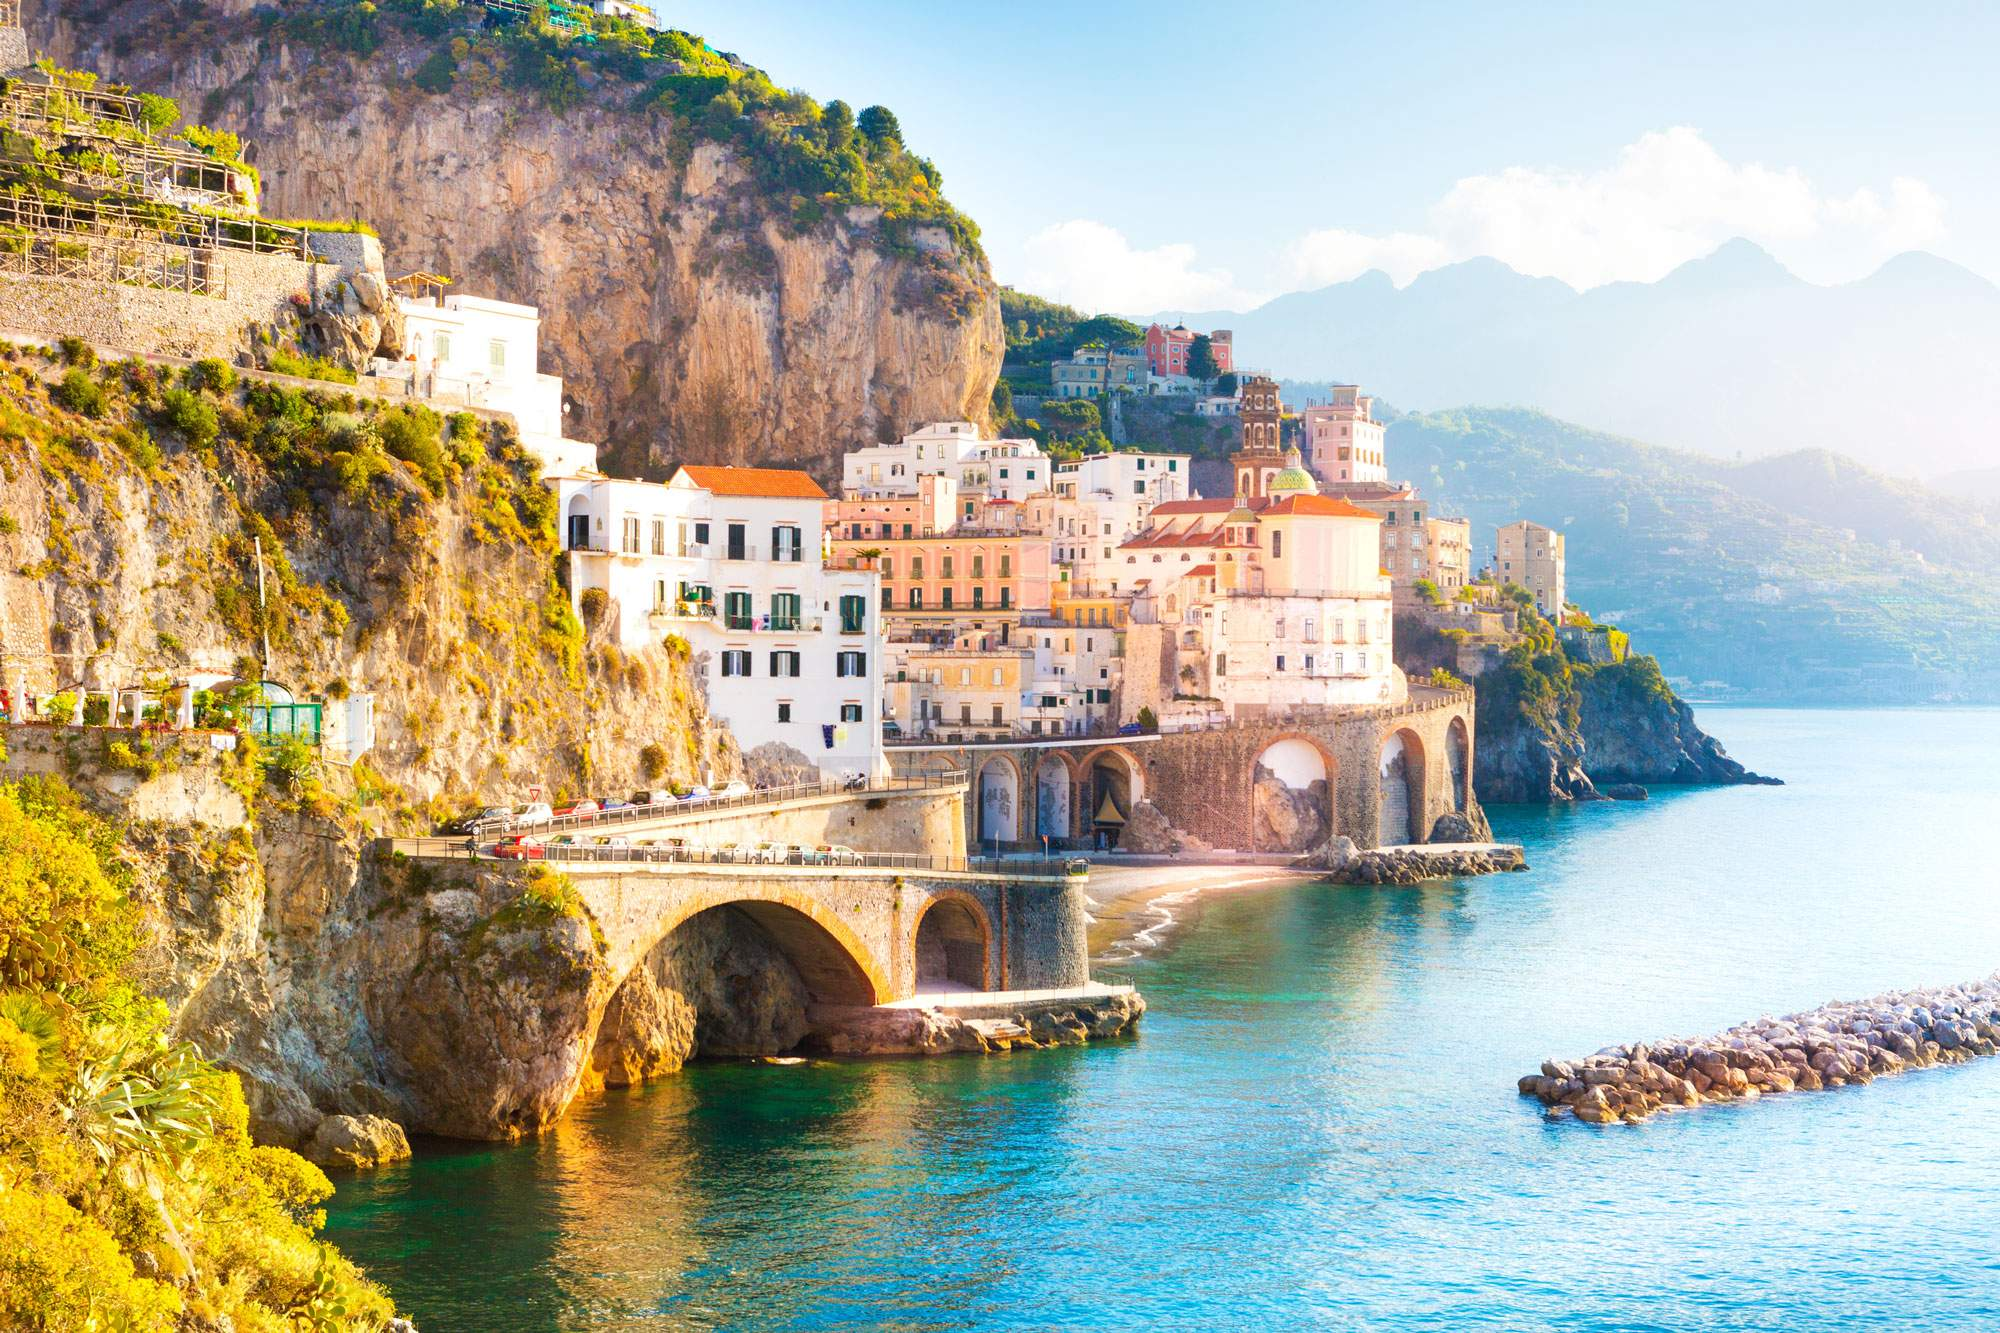 amalfi-coast-italy-bridge-seaside